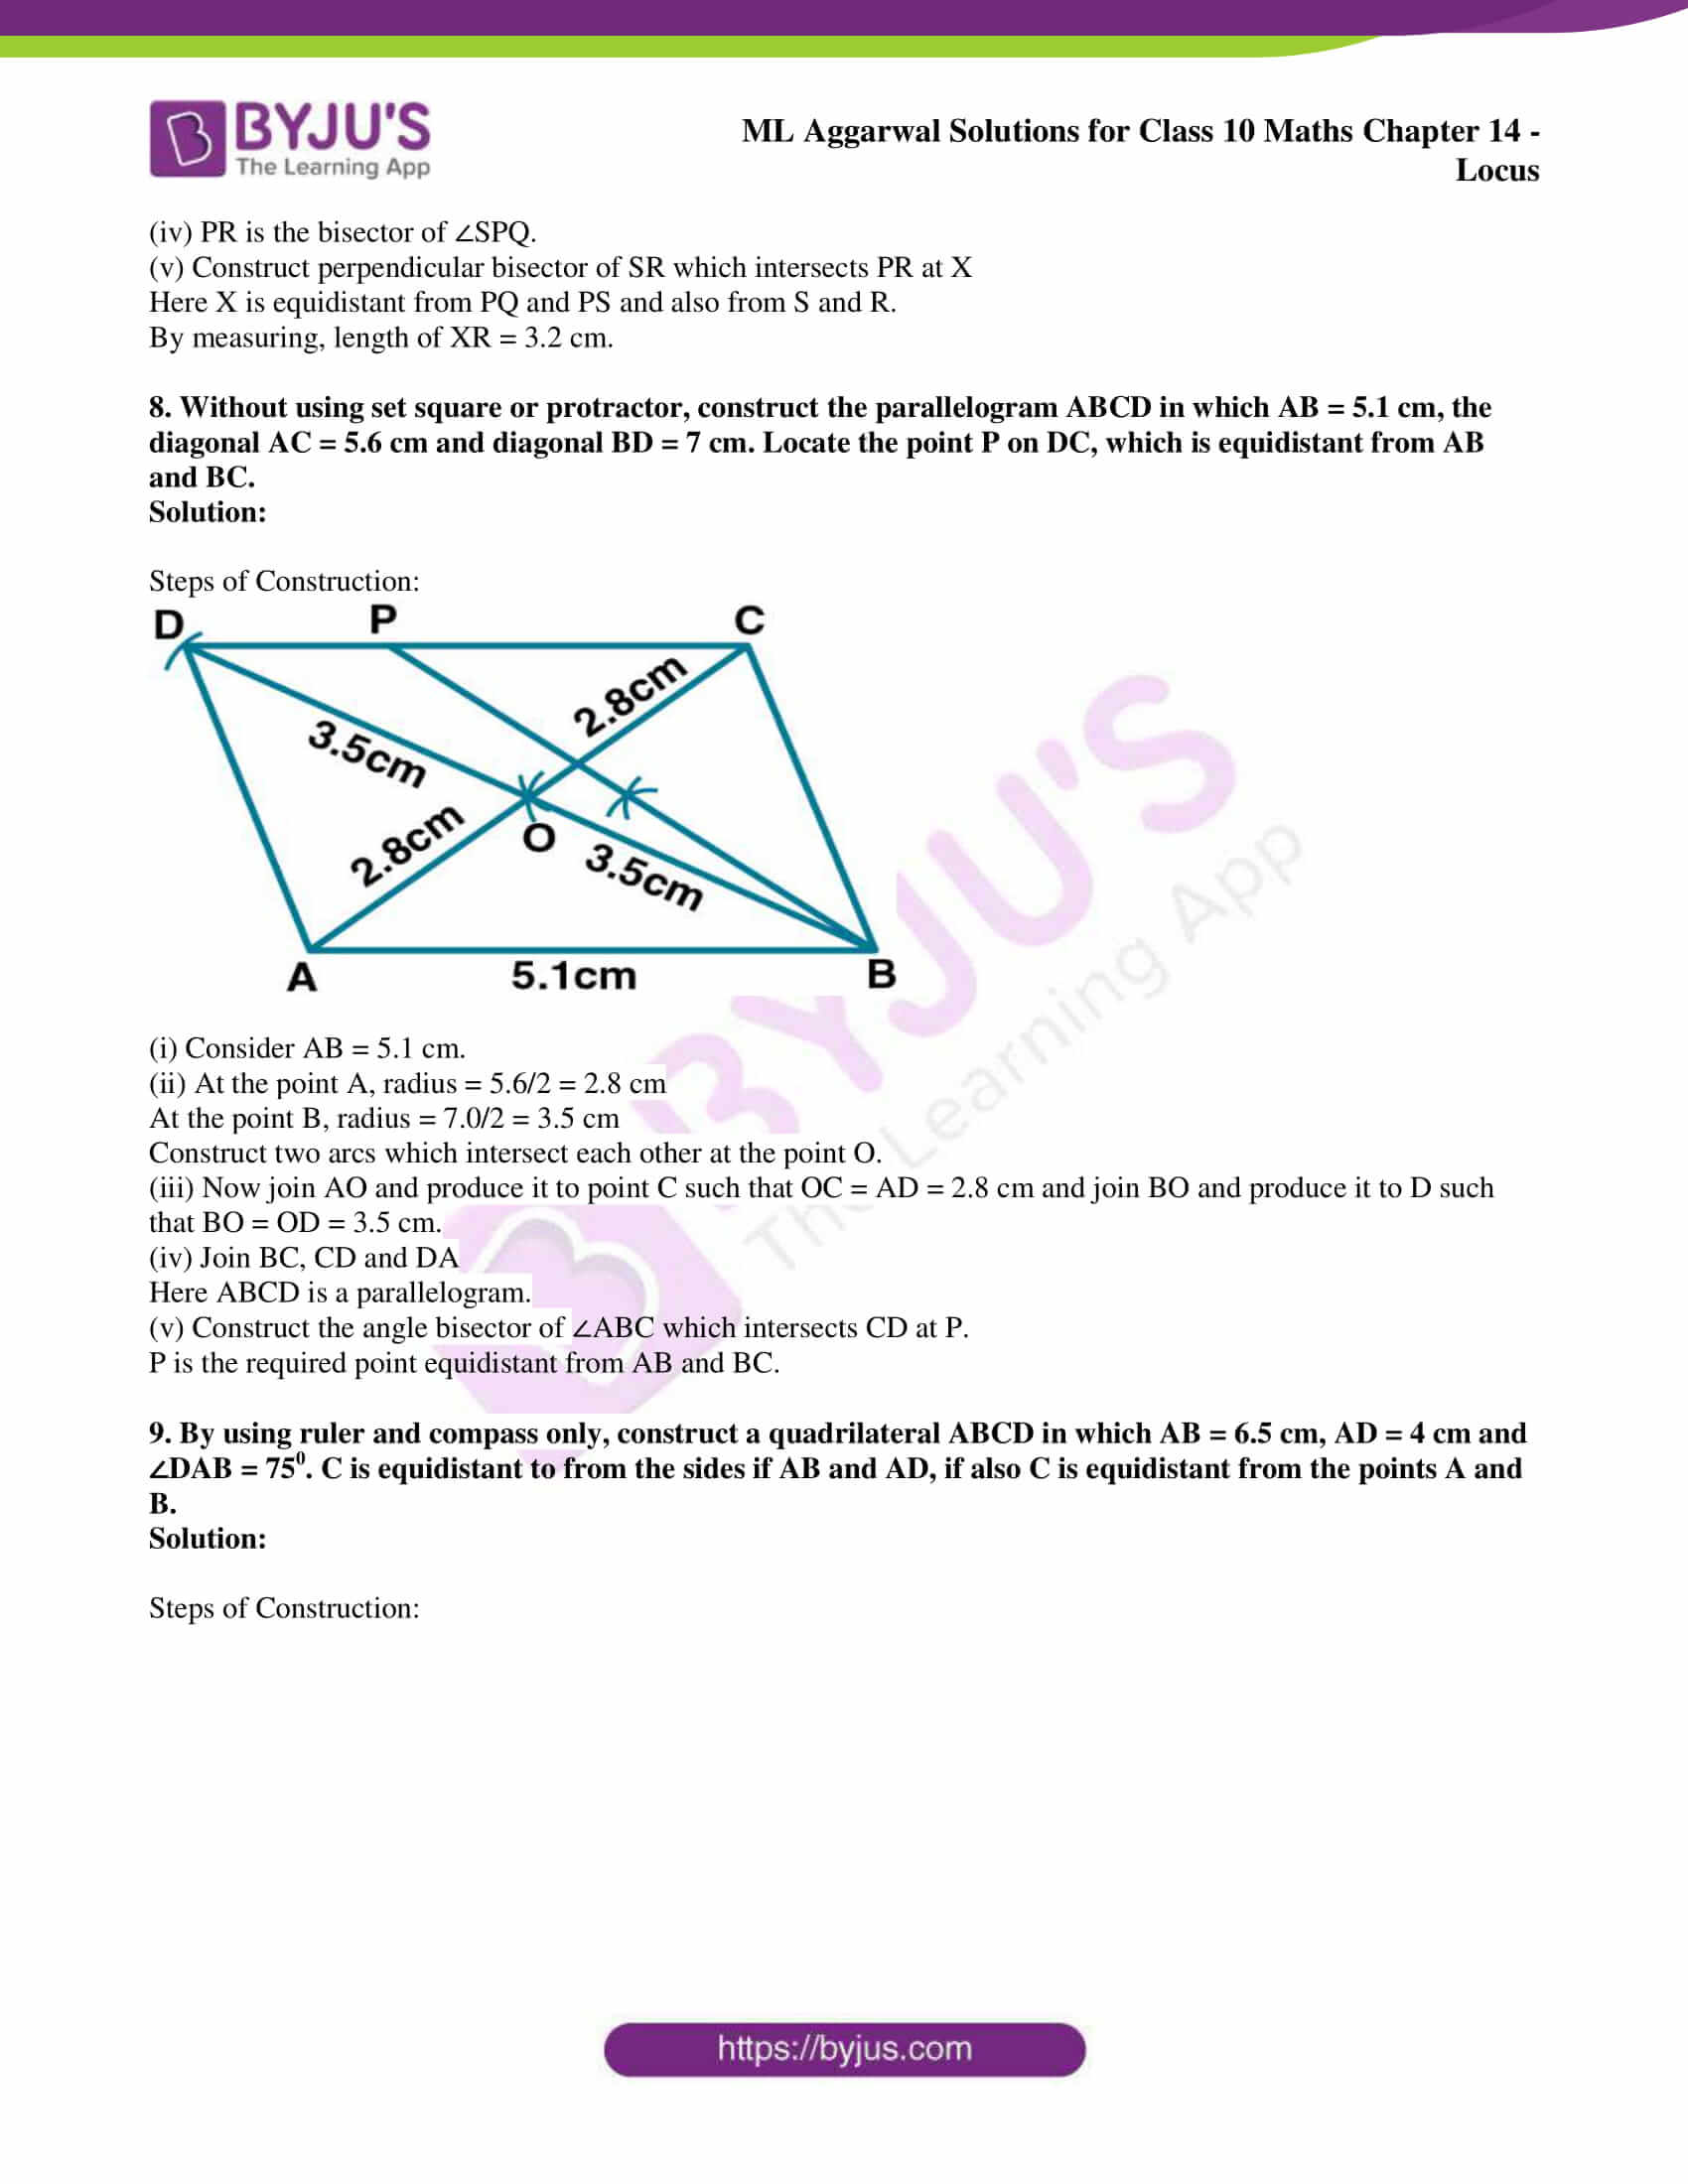 ml aggarwal solutions for class 10 maths chapter 14 23